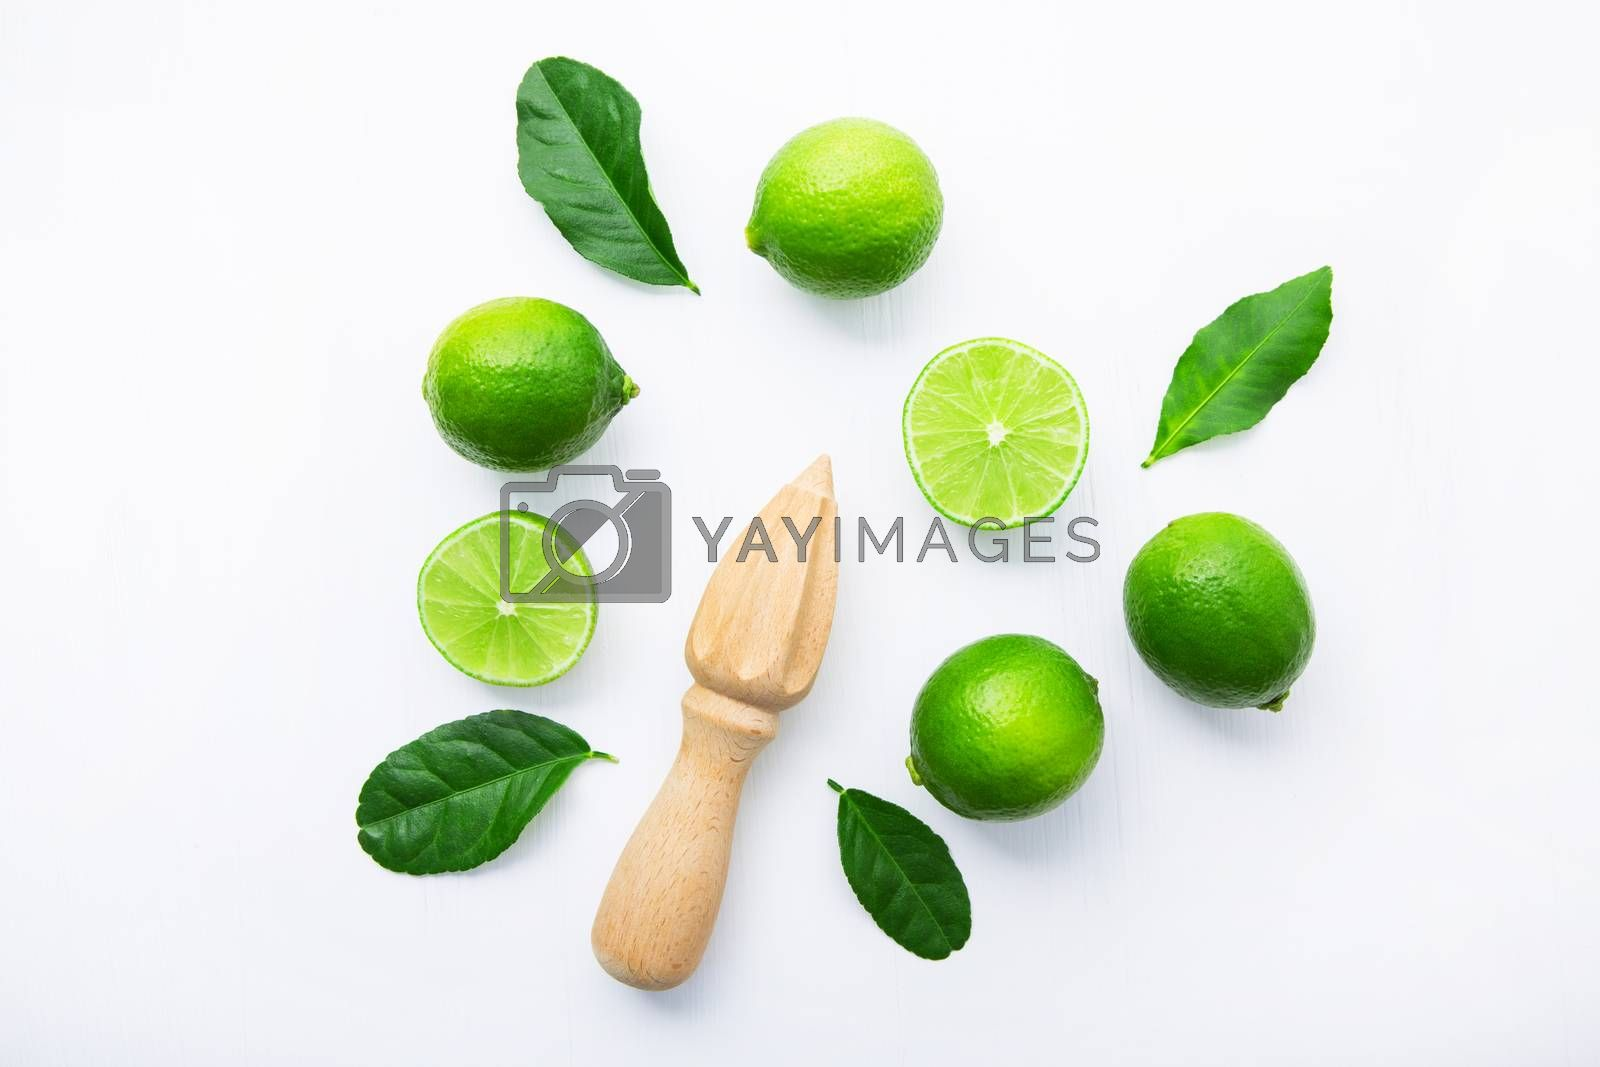 Fresh limes and wooden juicer on white background. Top view with by Bowonpat